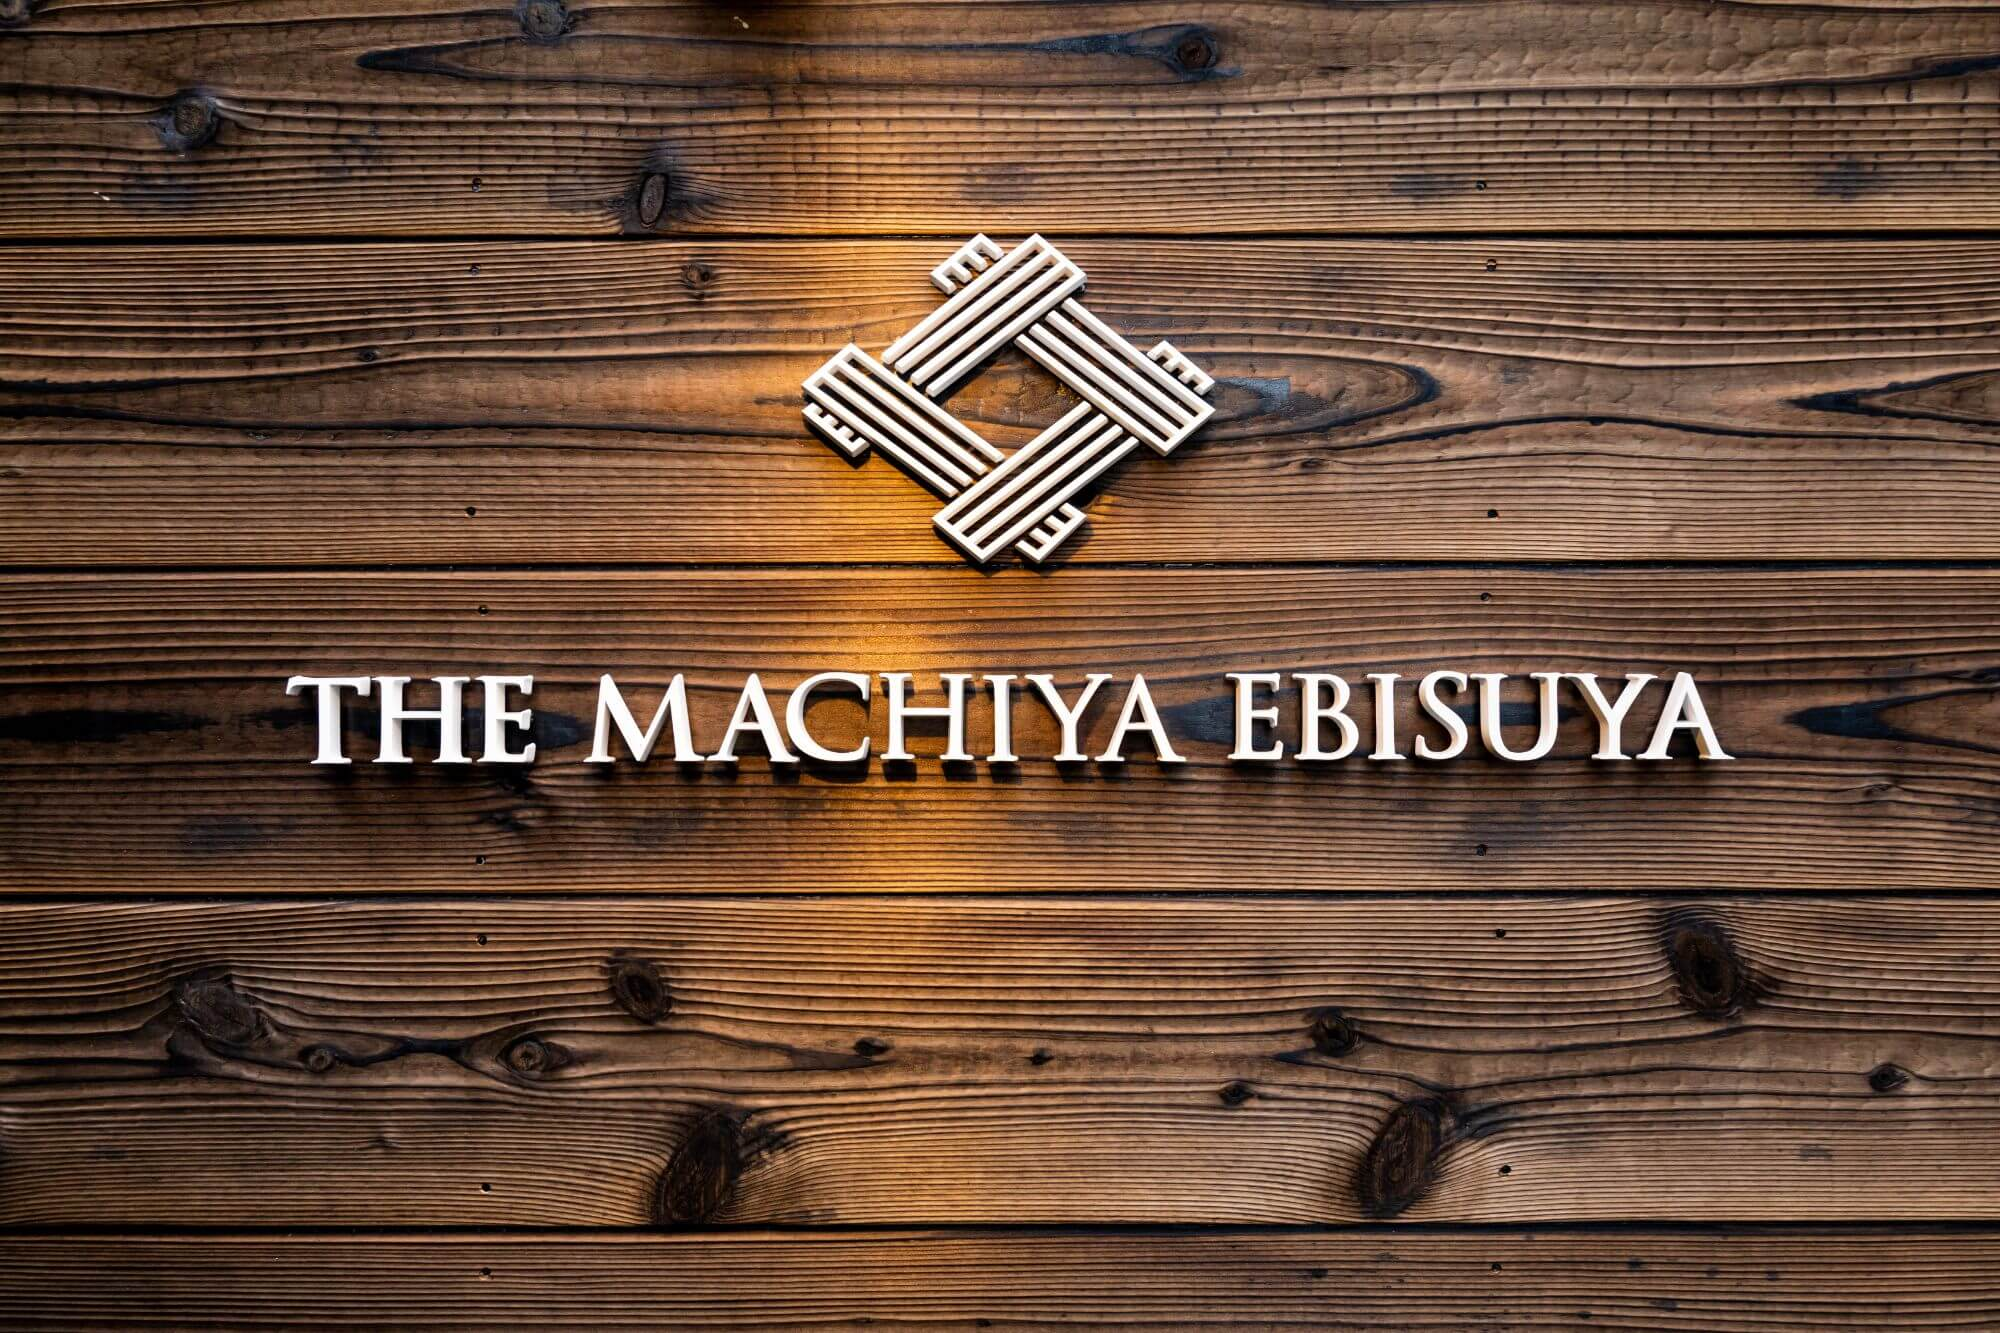 THE MACHIYA EBISUYA